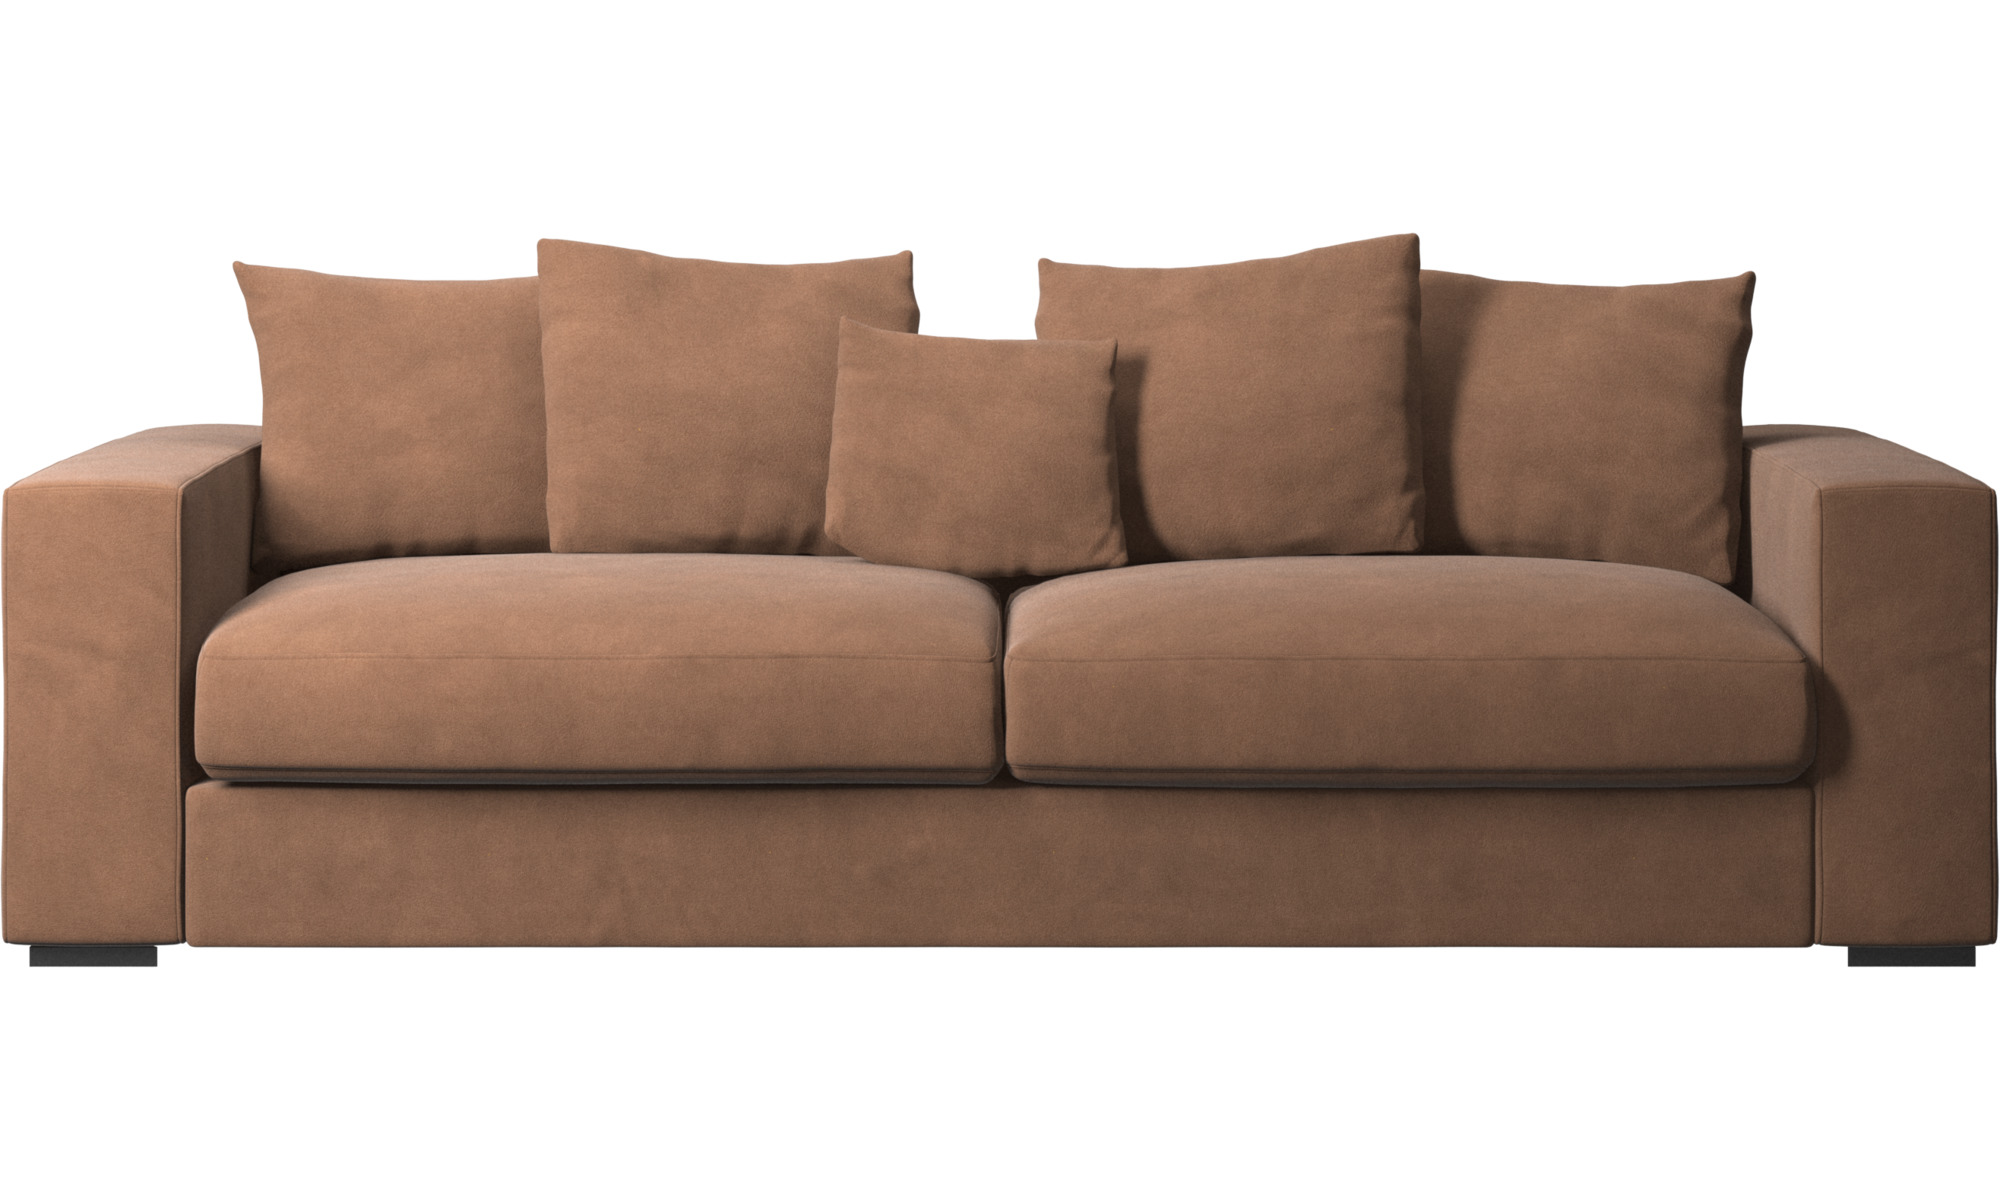 3 seater sofas cenova sofa boconcept for 3 on a couch